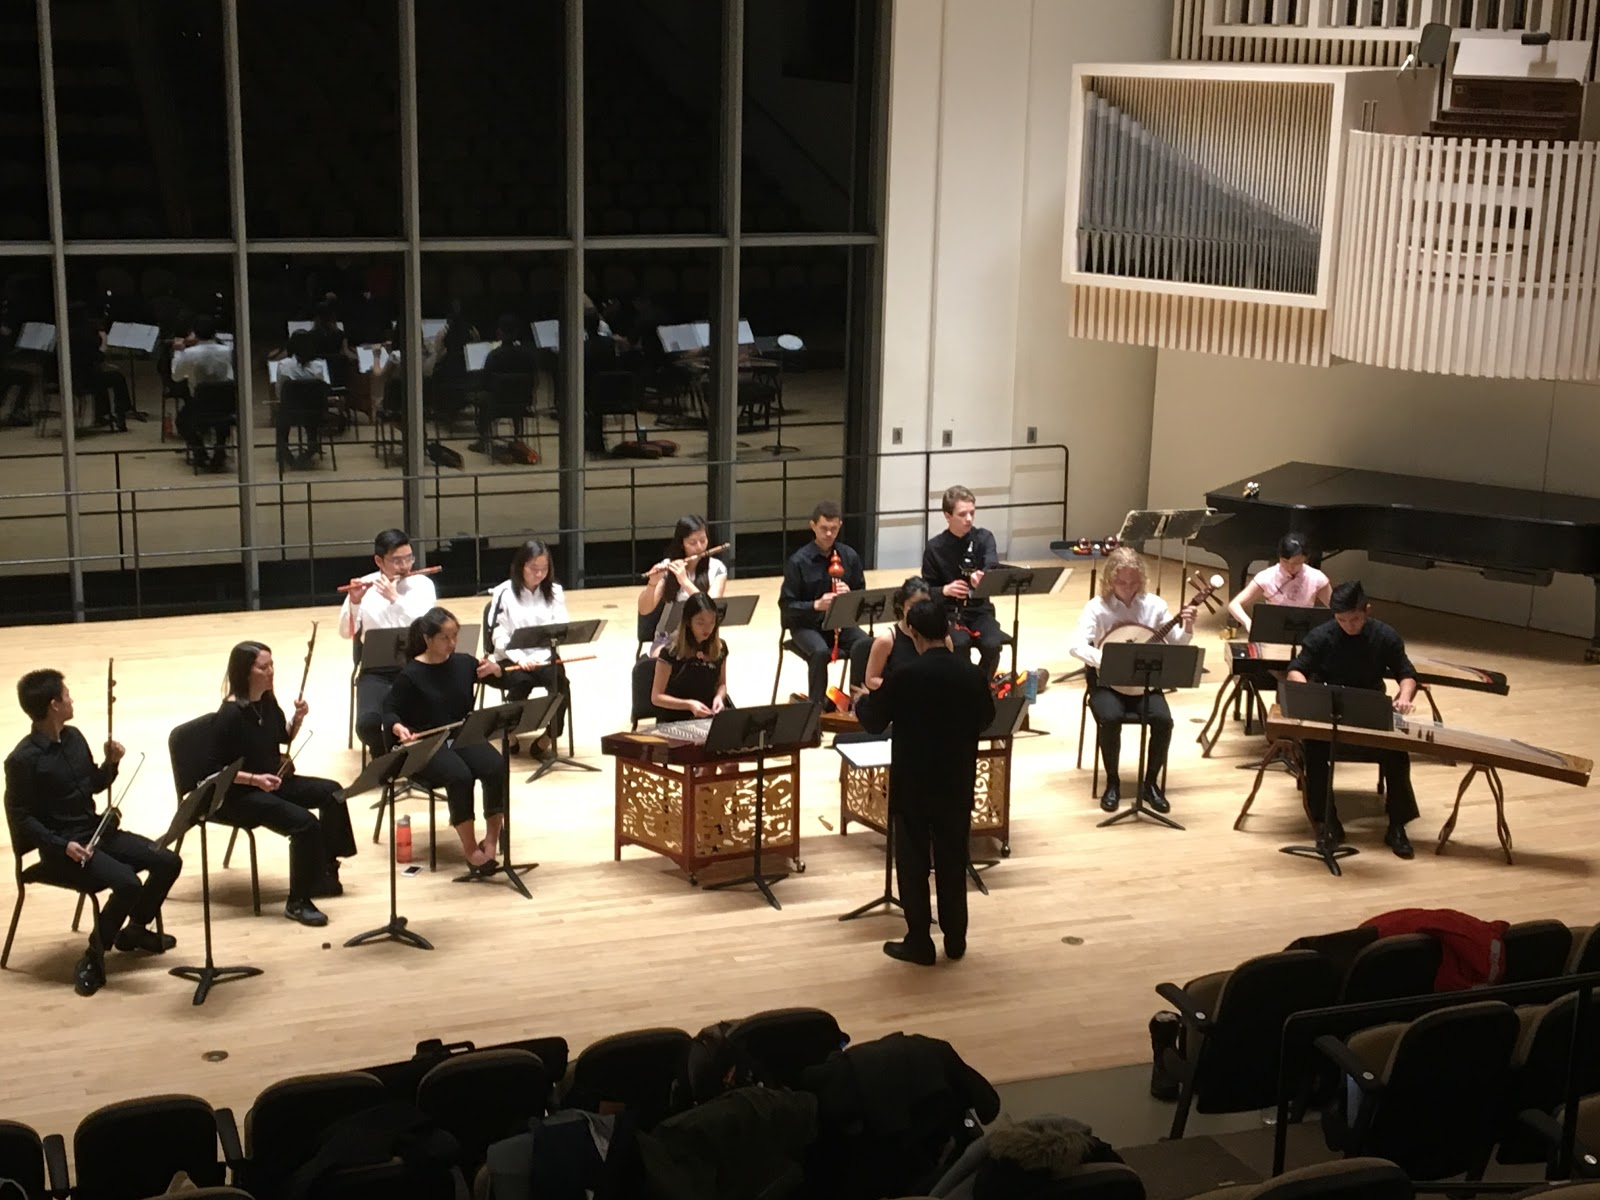 The Ensemble prepares for the show during dress rehearsal (photo courtesy of the Swarthmore Music Department)